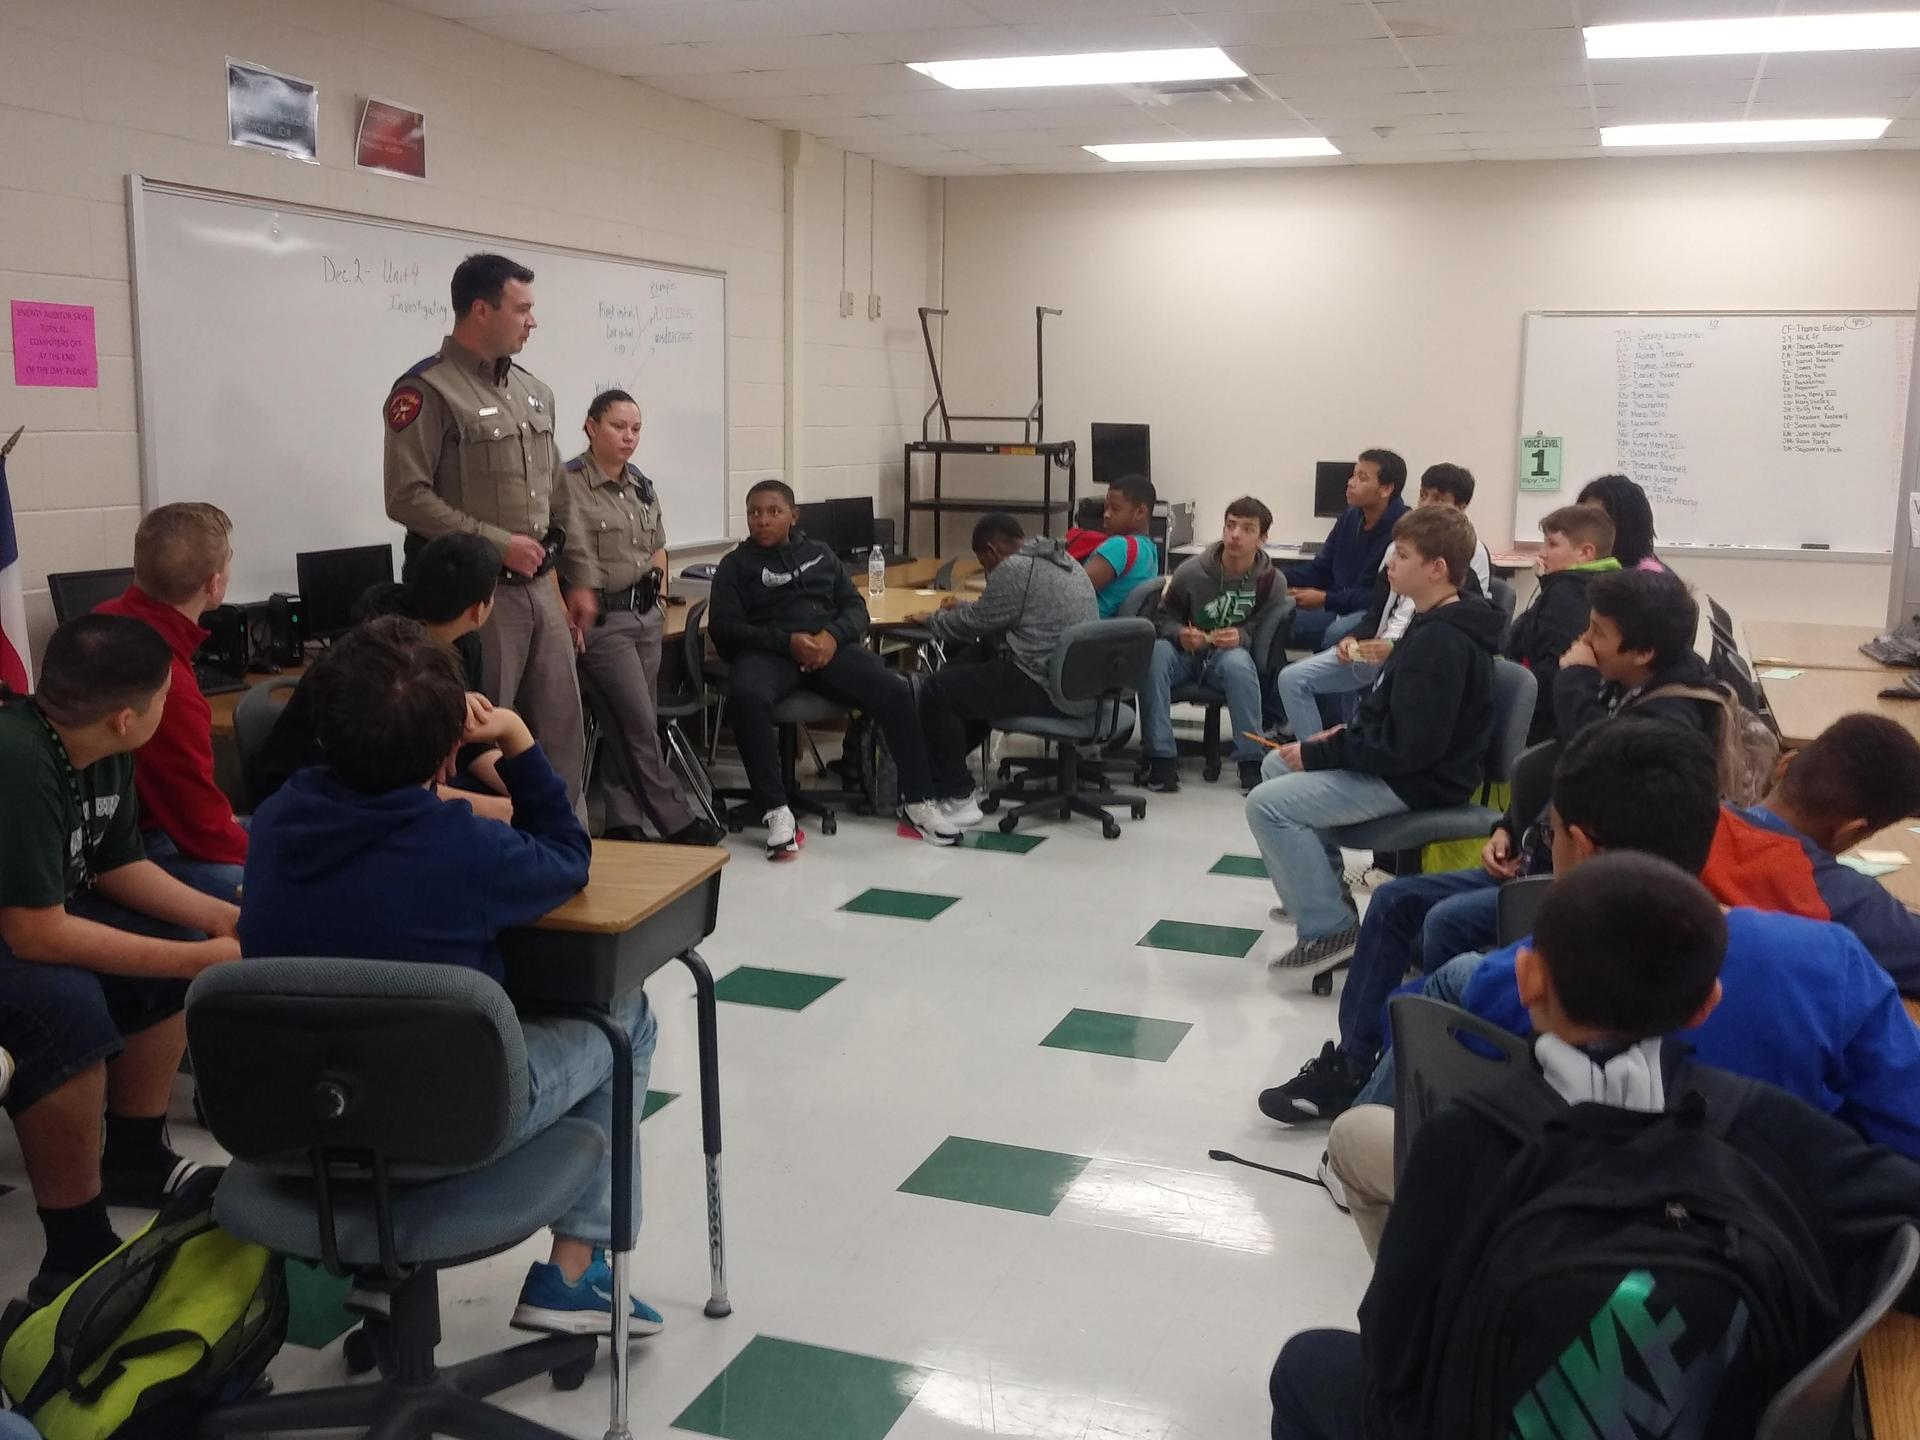 2 officers speaking to class of students at their desks